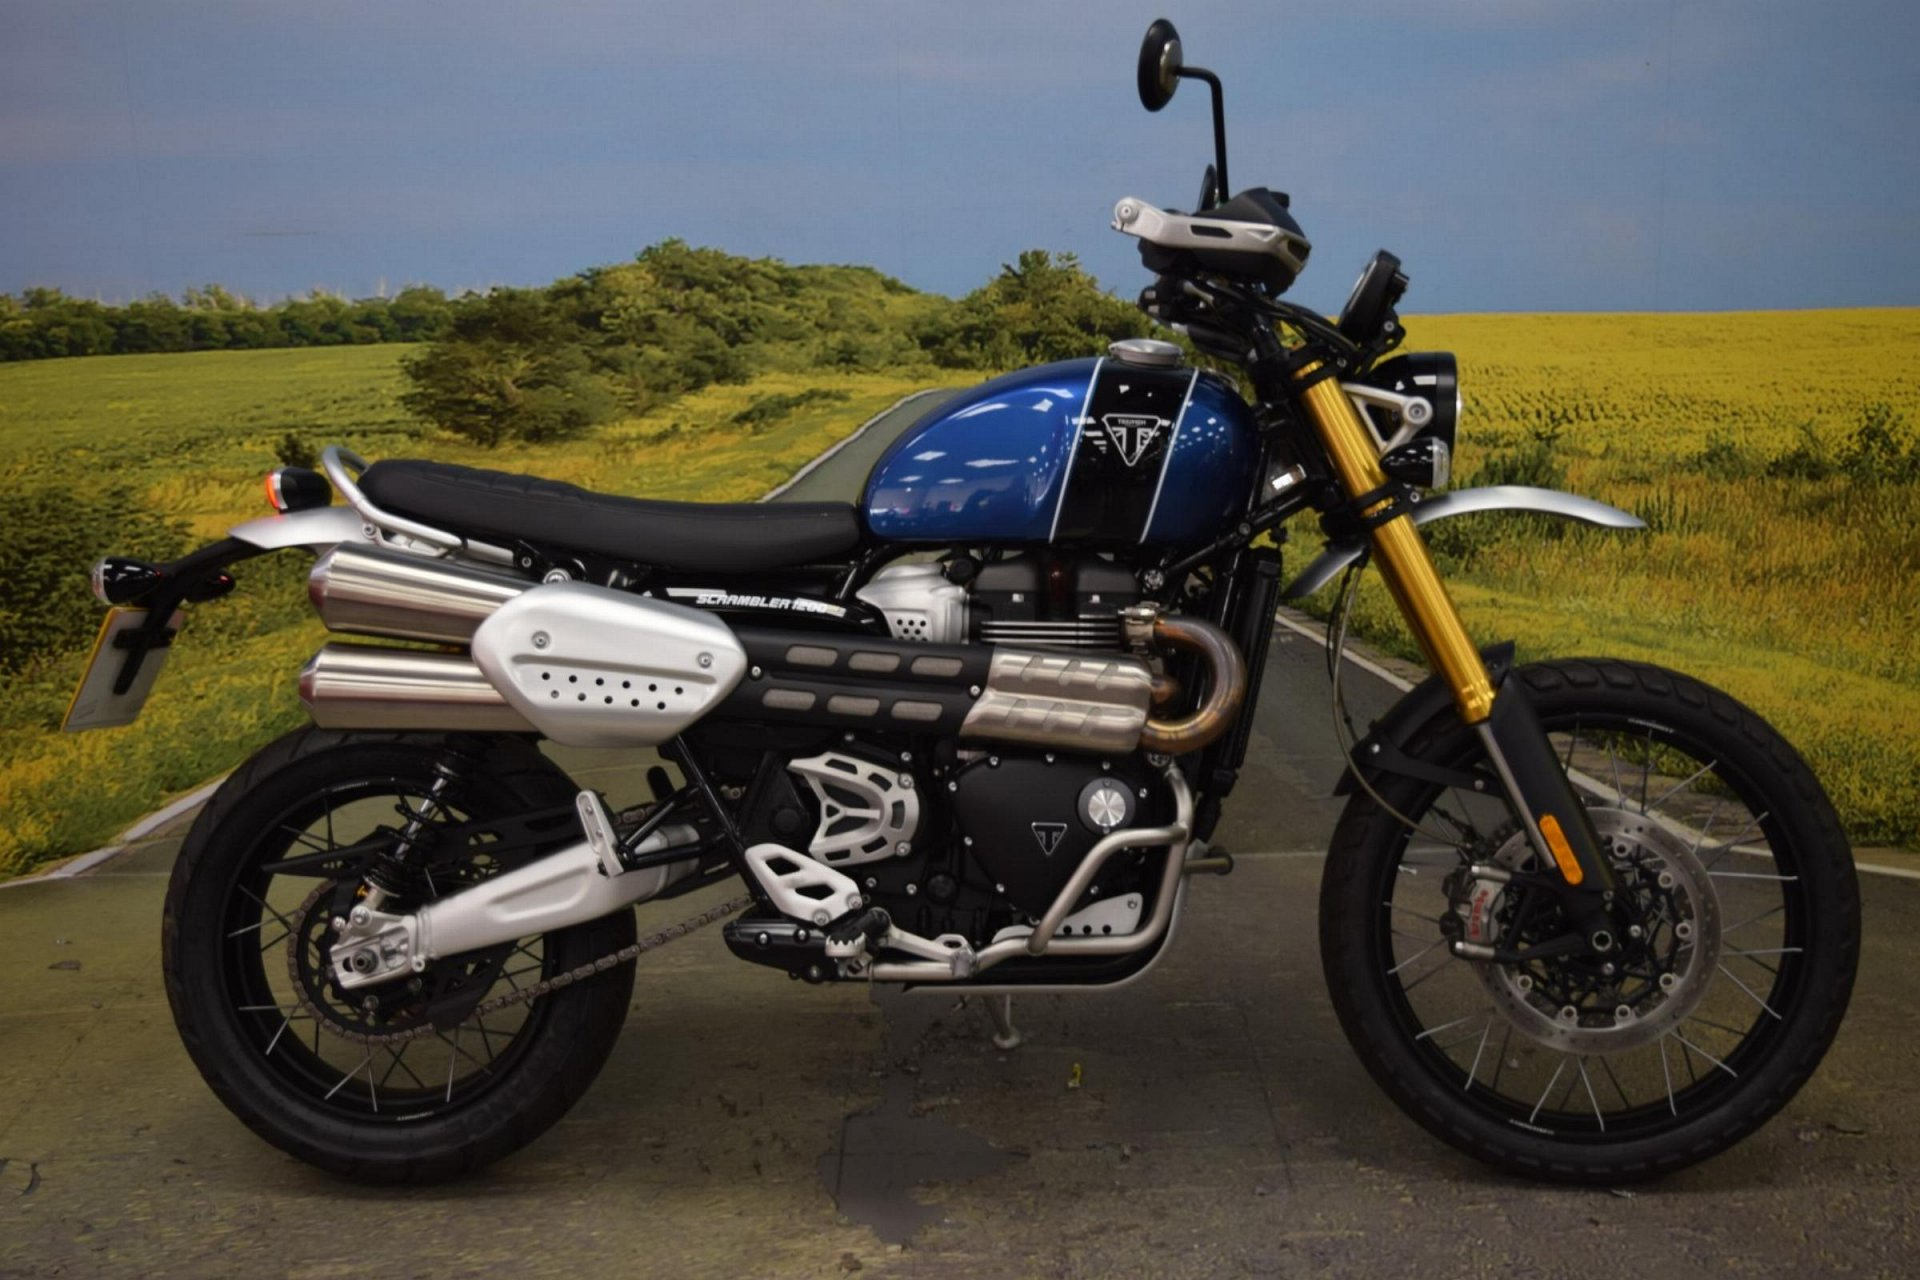 2019 Triumph Scrambler 1200 XE for sale in Staffordshire